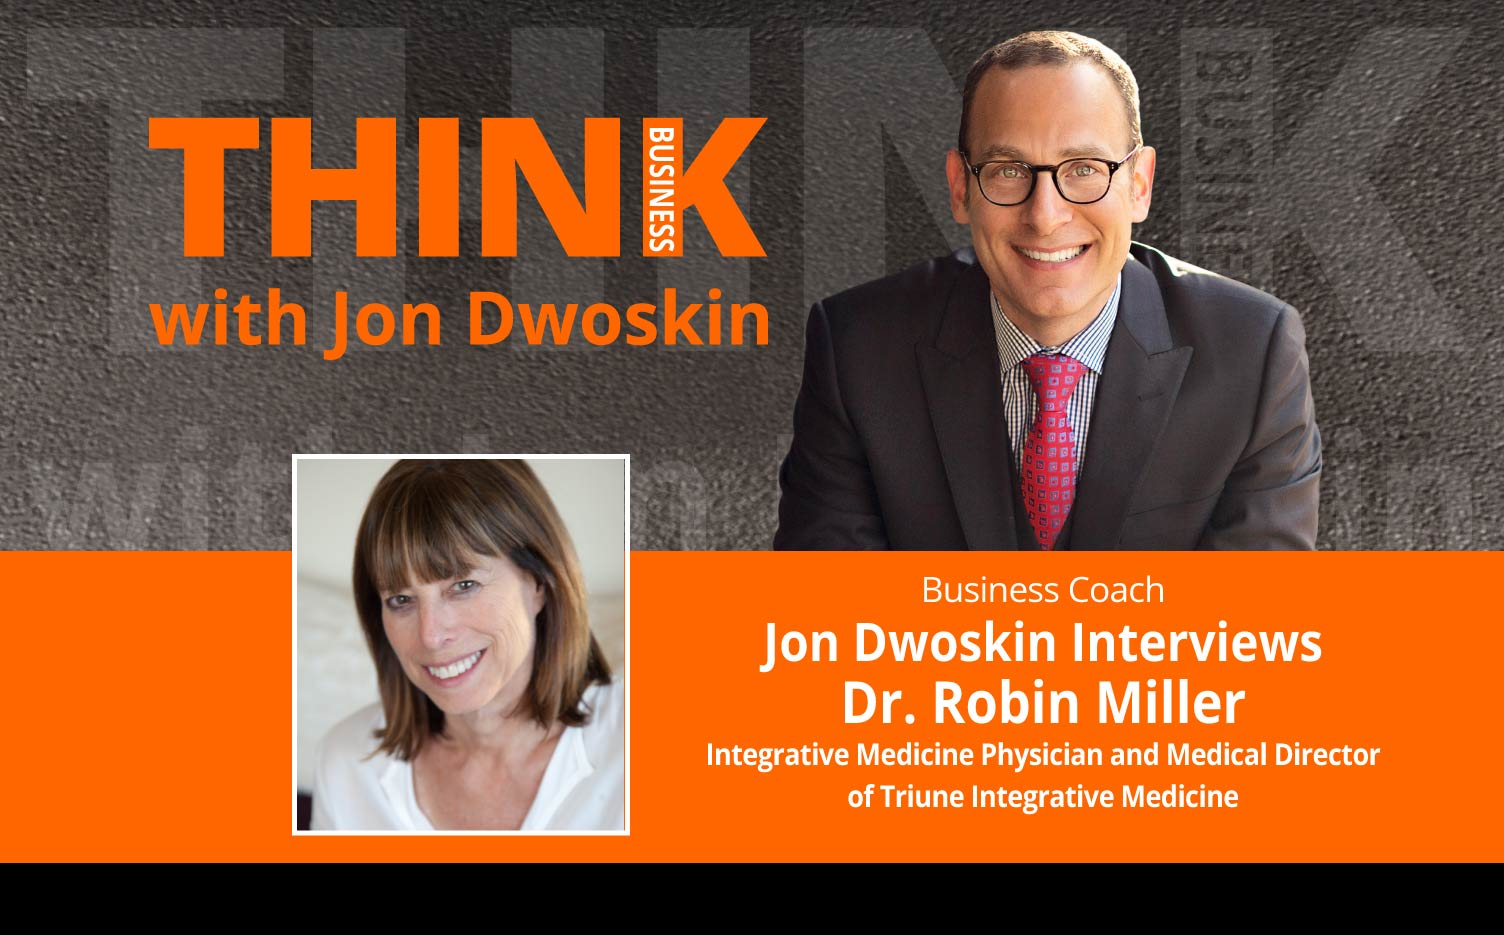 THINK Business Podcast: Jon Dwoskin Interviews Dr. Robin Miller, Integrative Medicine Physician and Medical Director of Triune Integrative Medicine